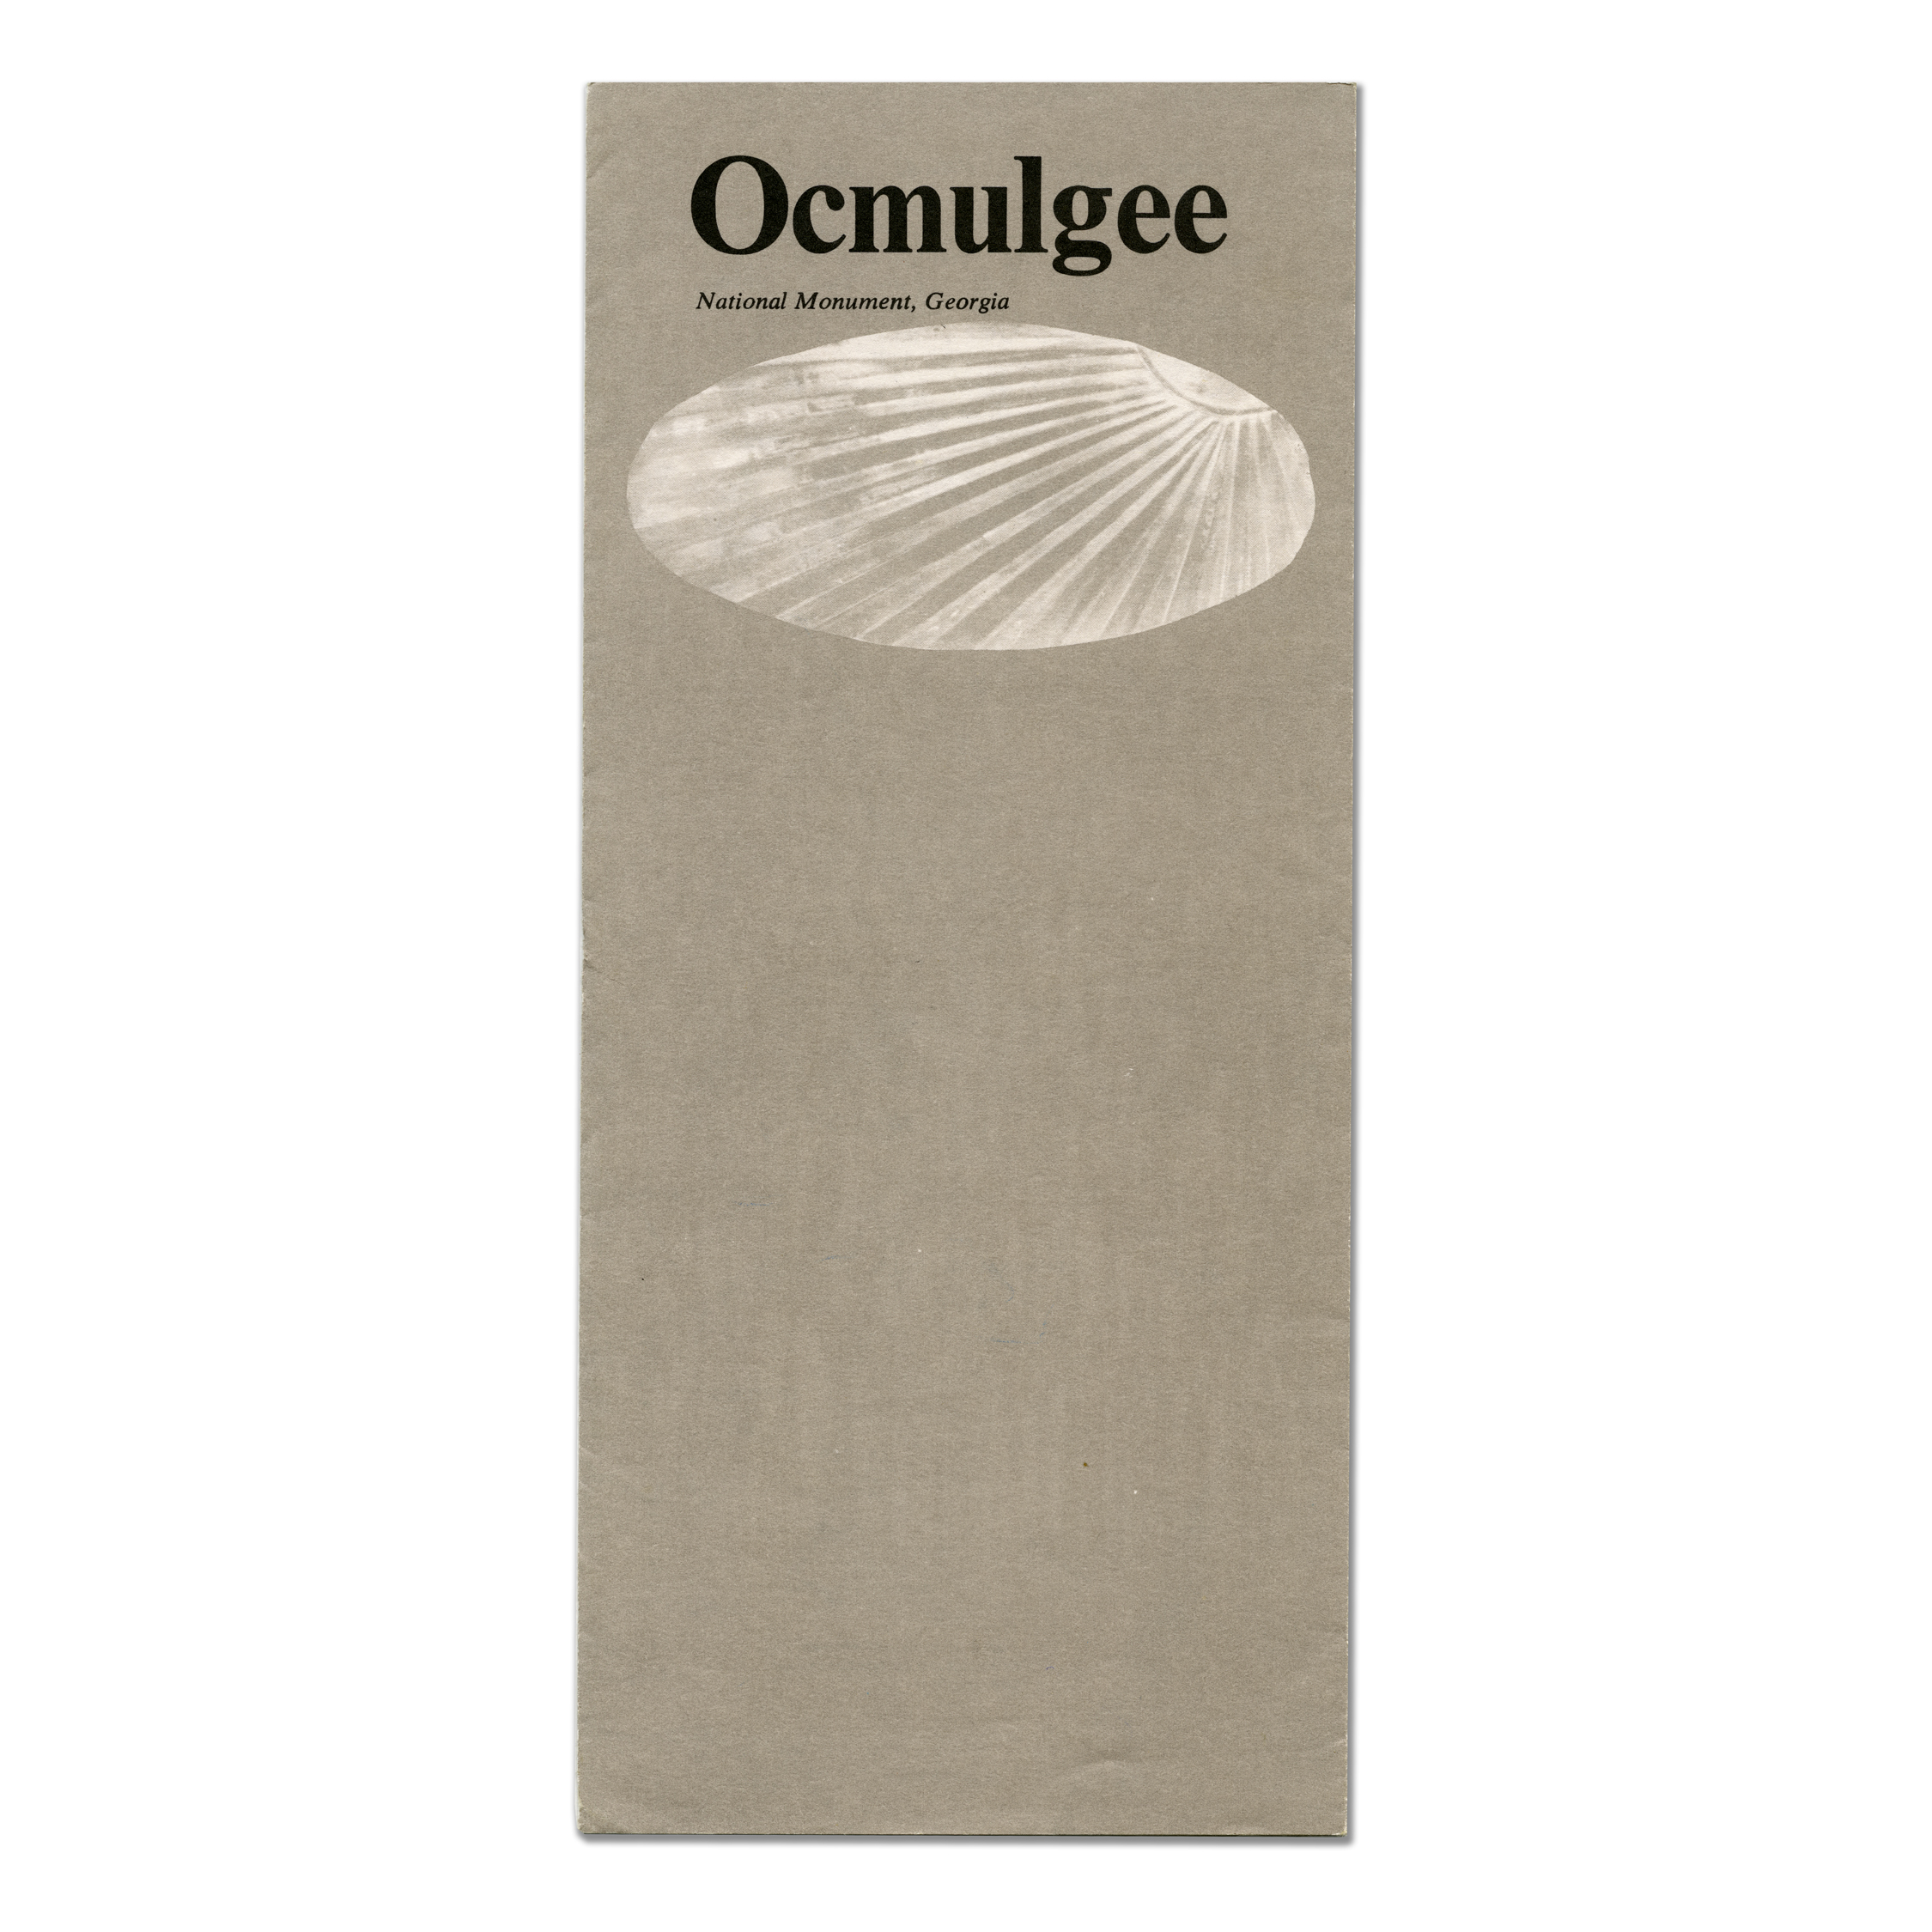 1973_ocmulgee_national_monument_brochure.jpg